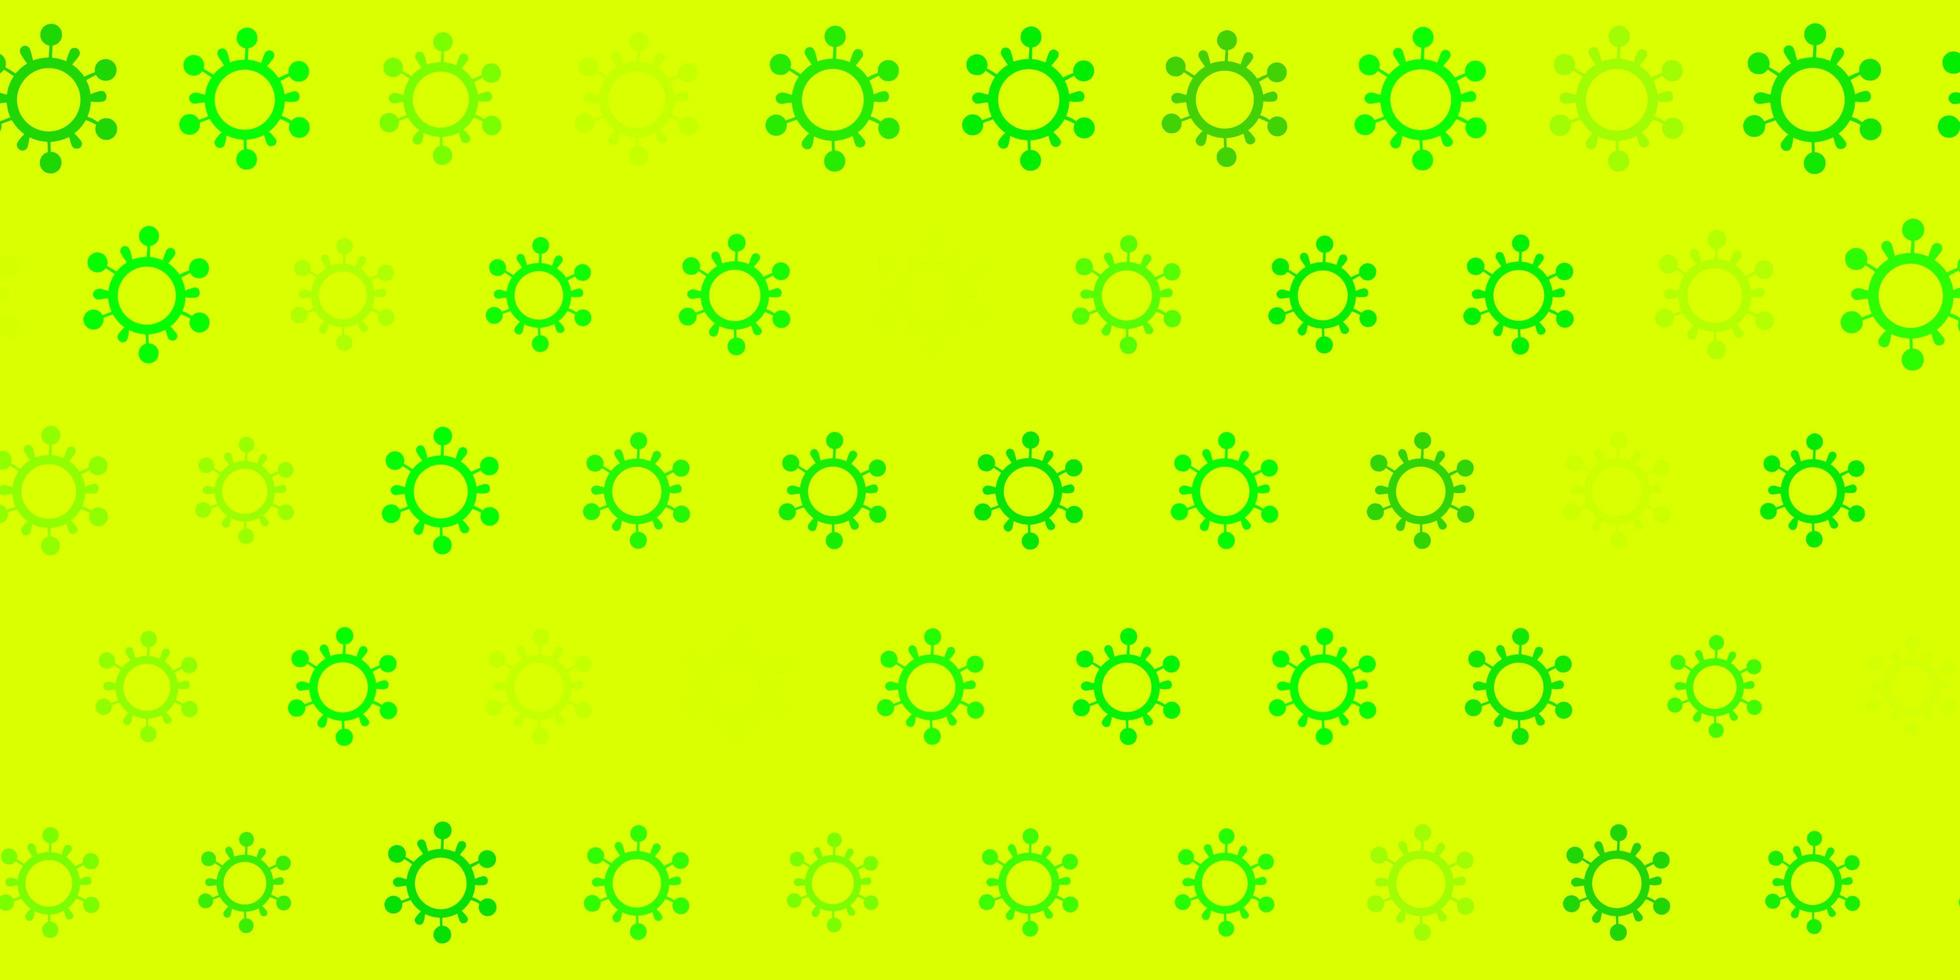 Green background with covid 19 symbols. vector